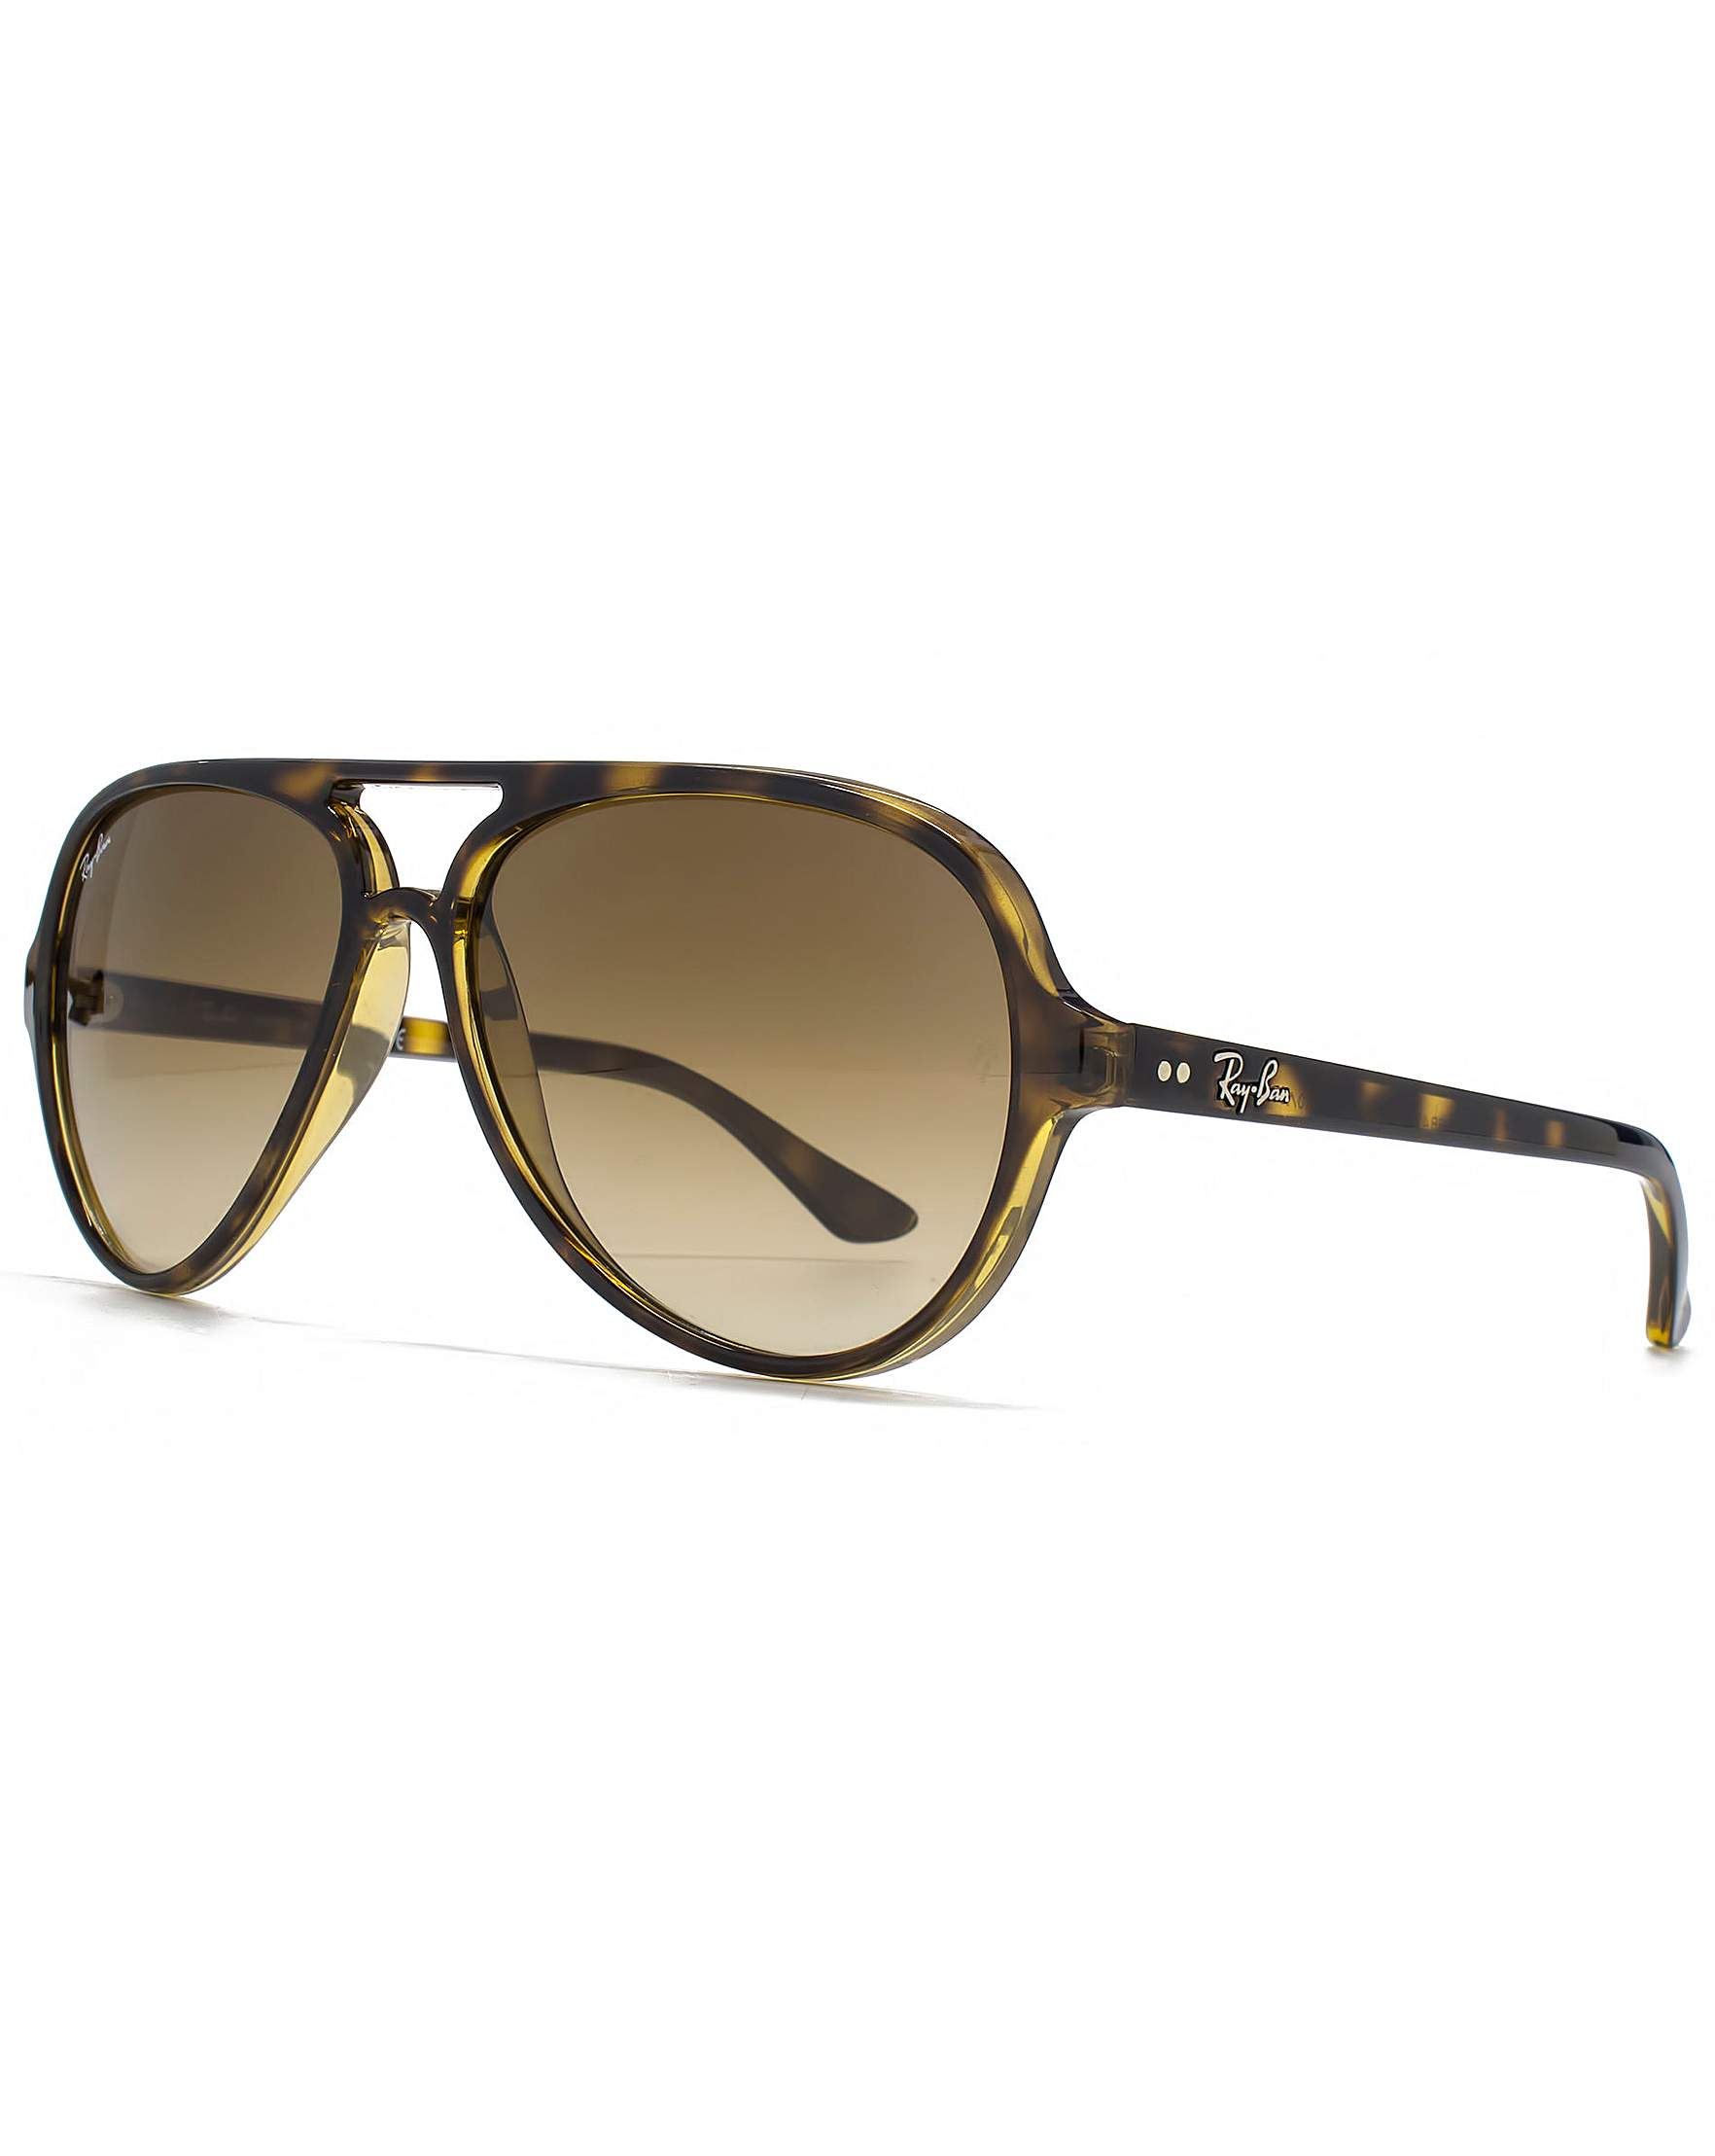 Ray-Ban CATS 5000 Aviator Sunglasses   Simply Be 994ee6fe39ff